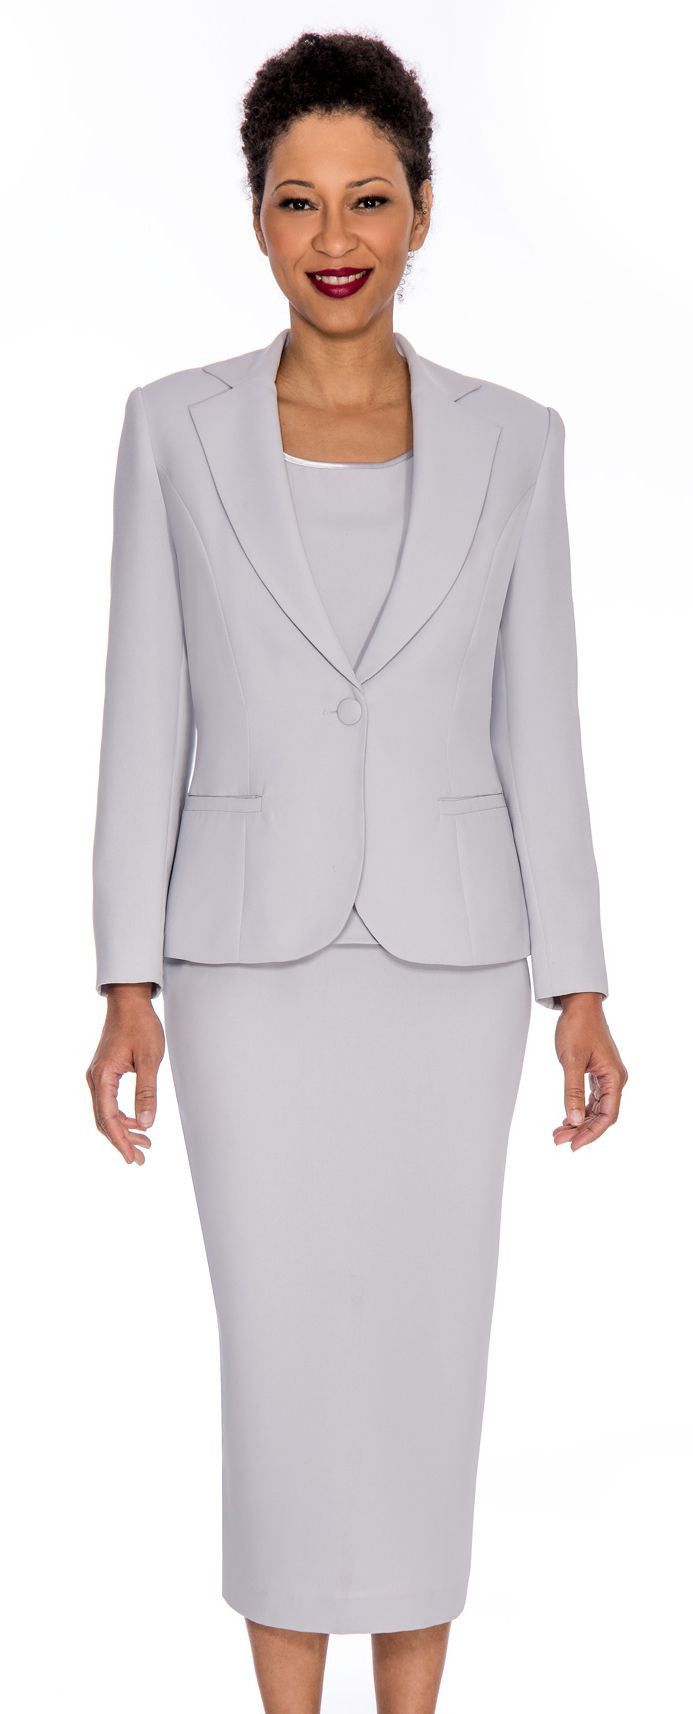 Giovanna Usher Suit 0823-Silver - Church Suits For Less